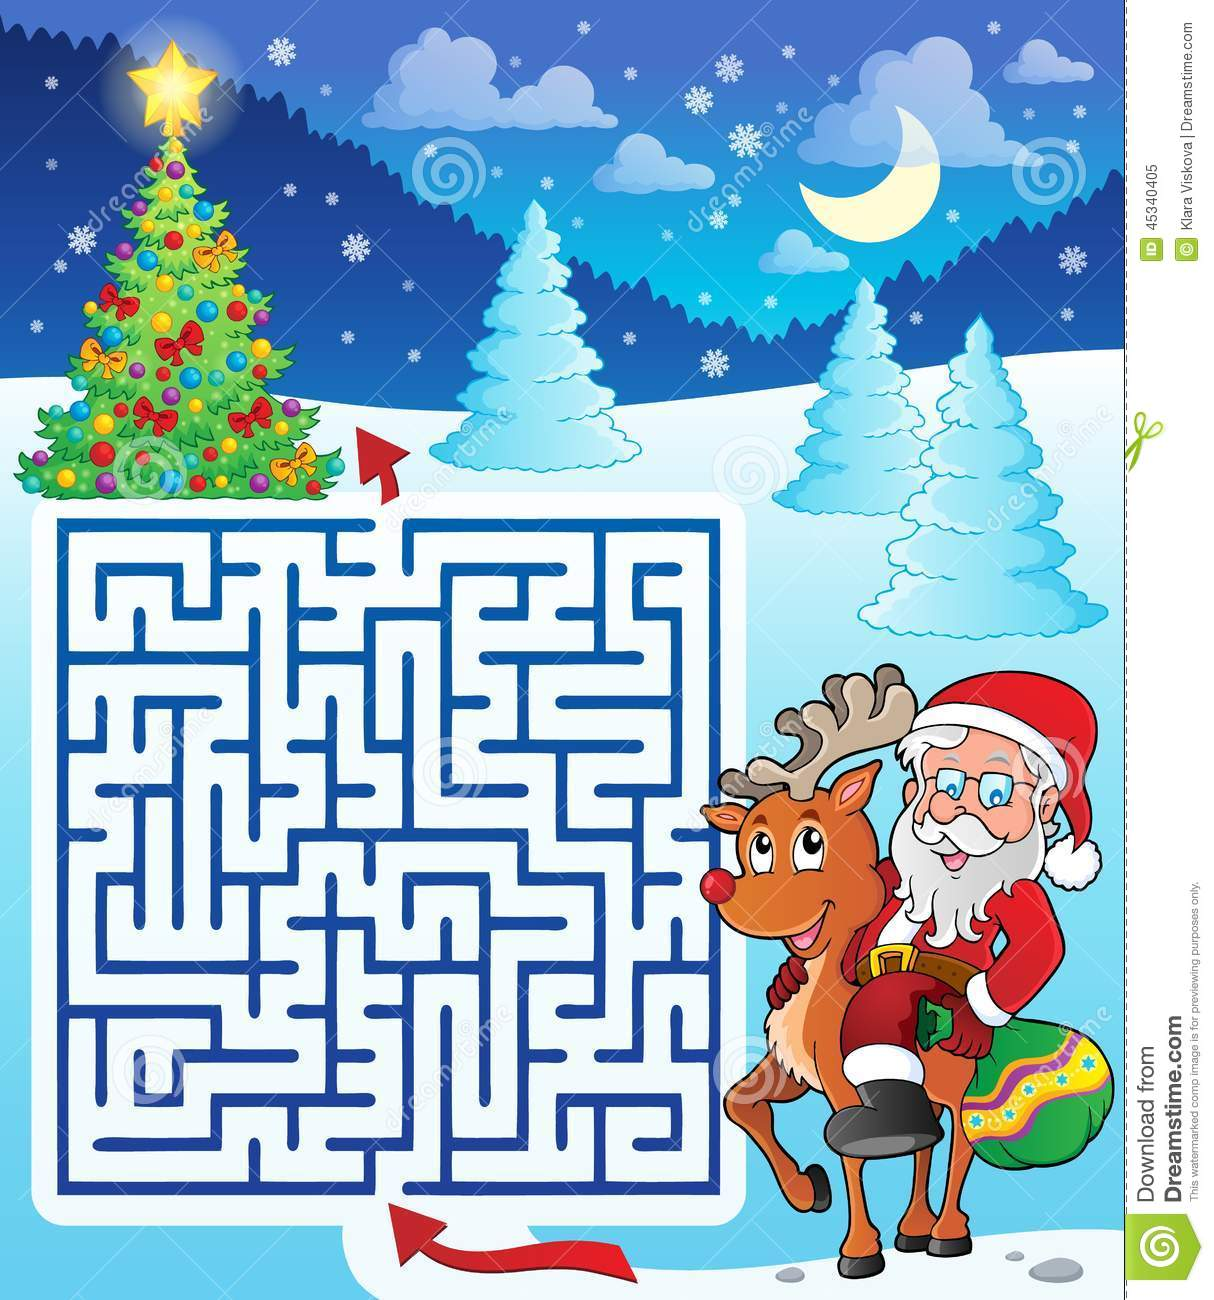 Maze 3 With Santa Claus And Deer Stock Vector